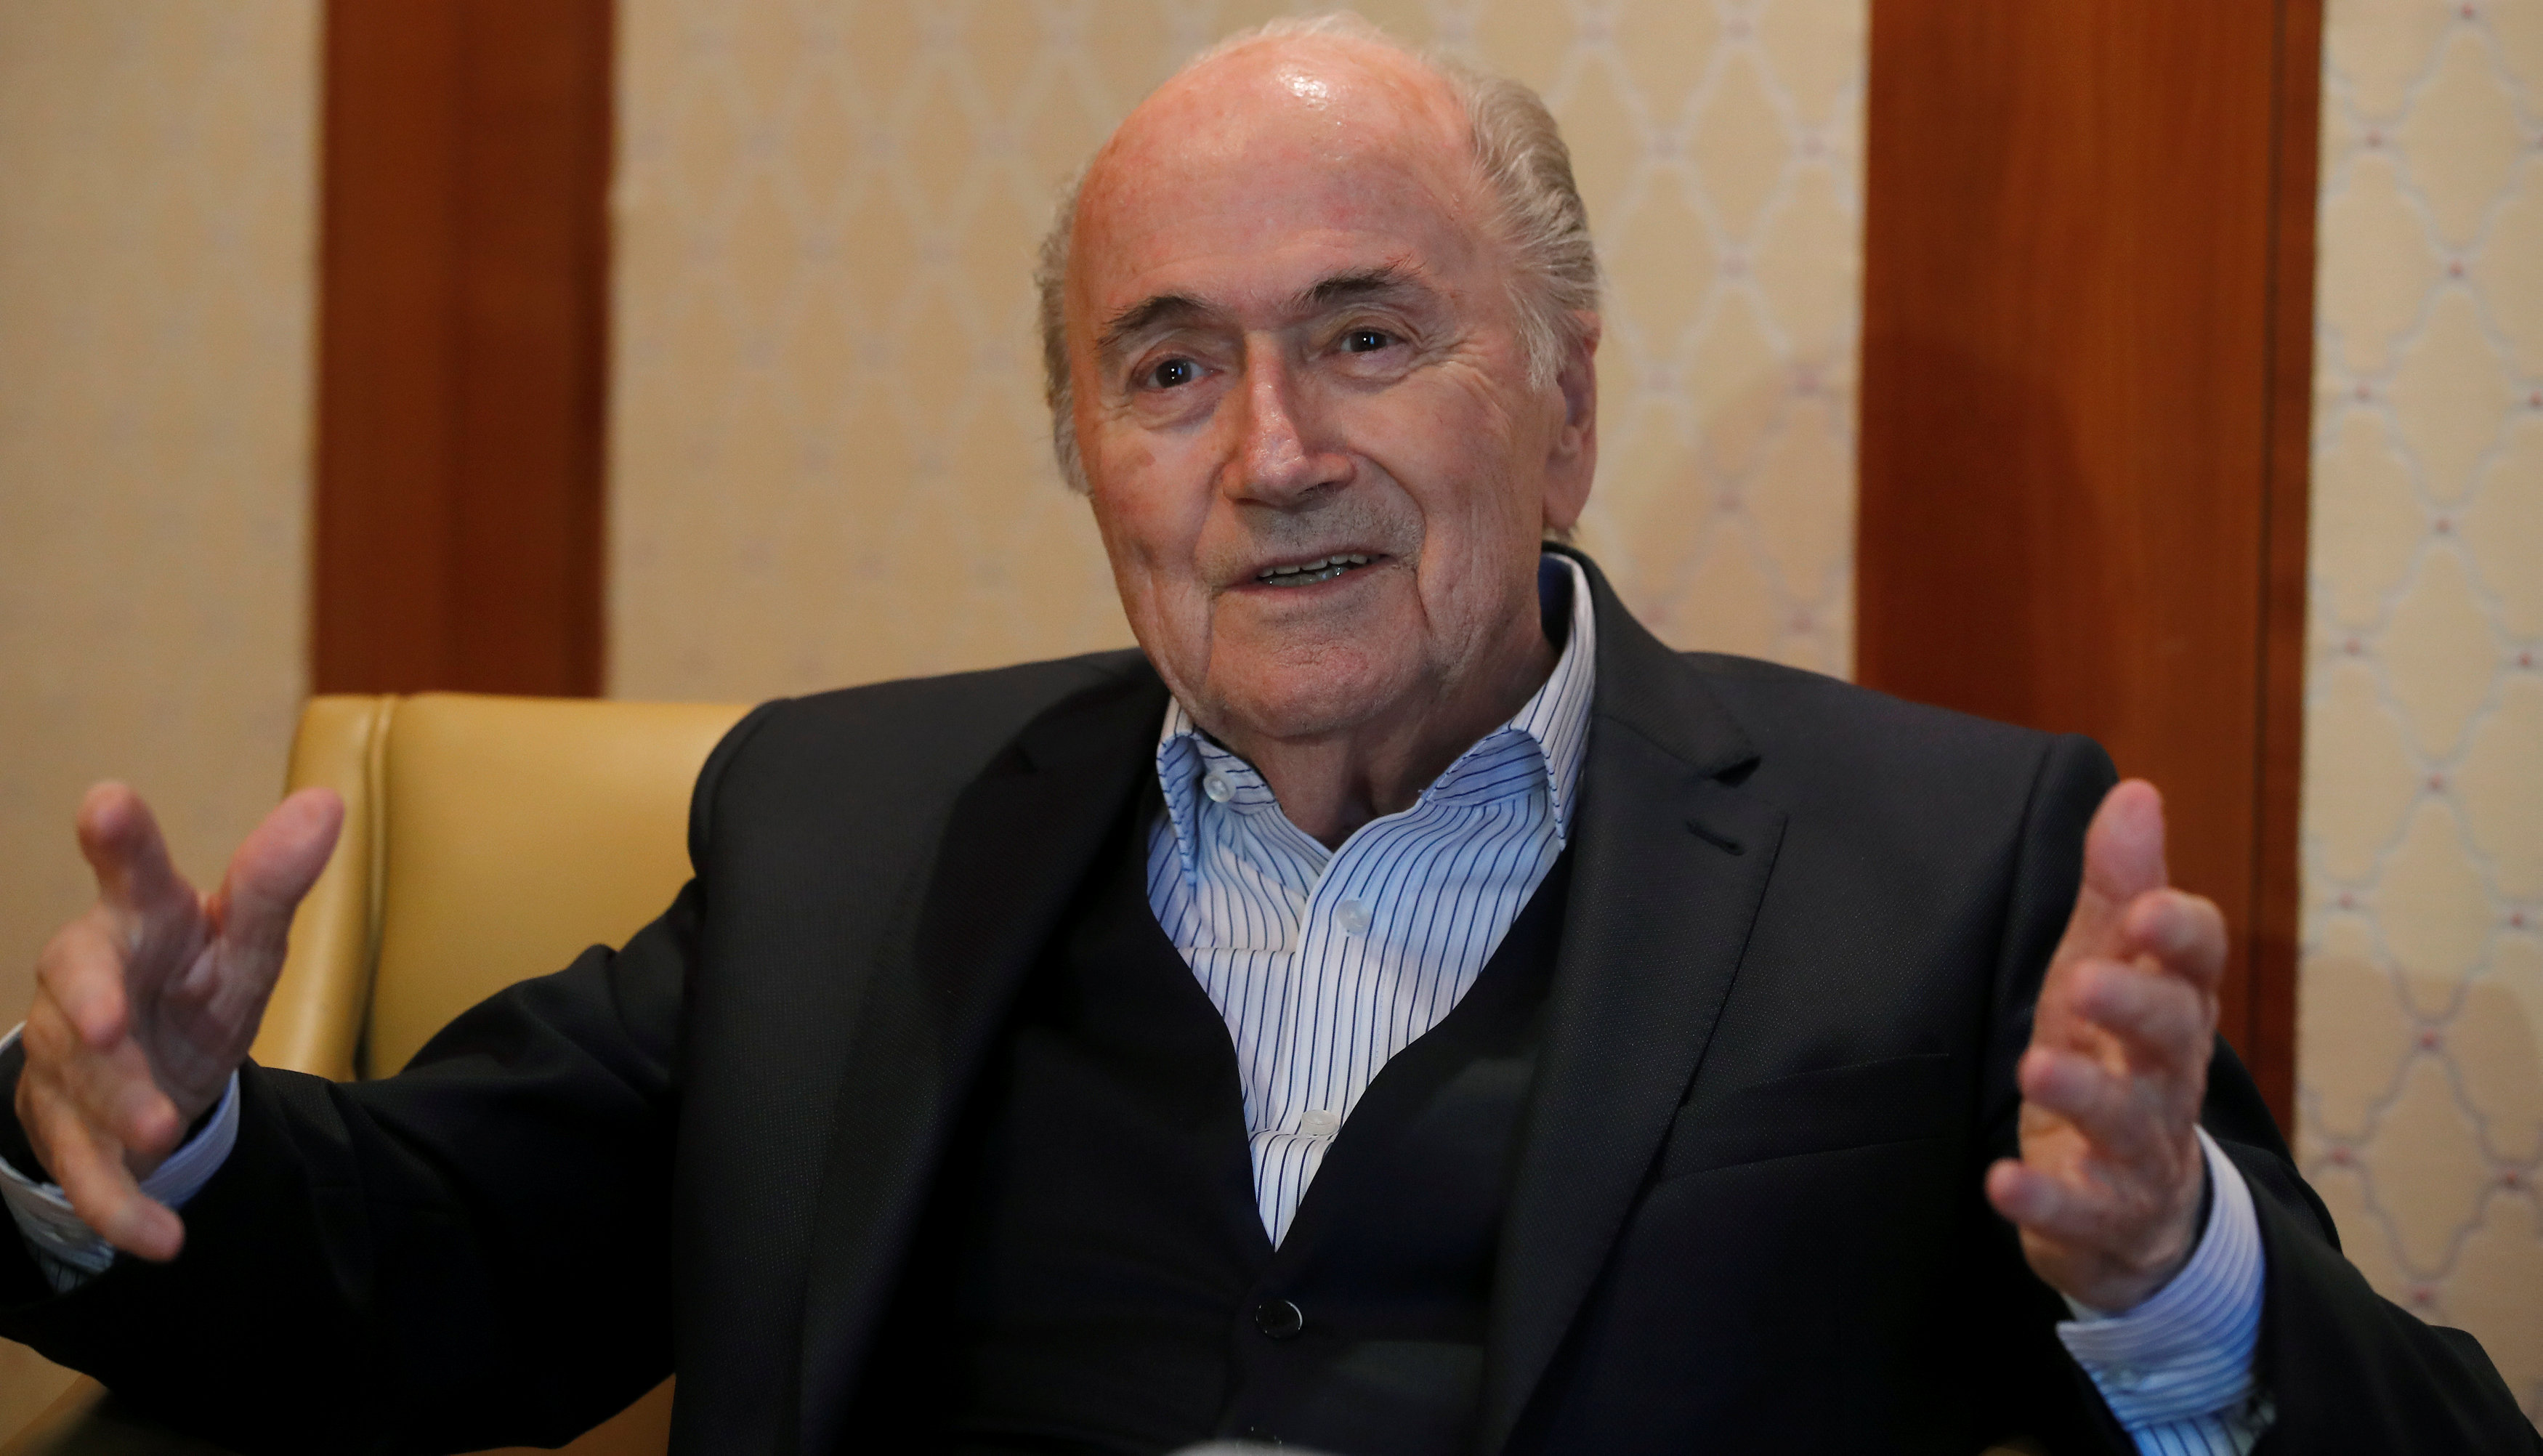 Former FIFA President Sepp Blatter gestures during an interview with Reuters in Zurich, Switzerland April 10, 2018. Picture taken April 10, 2018. Photo: REUTERS